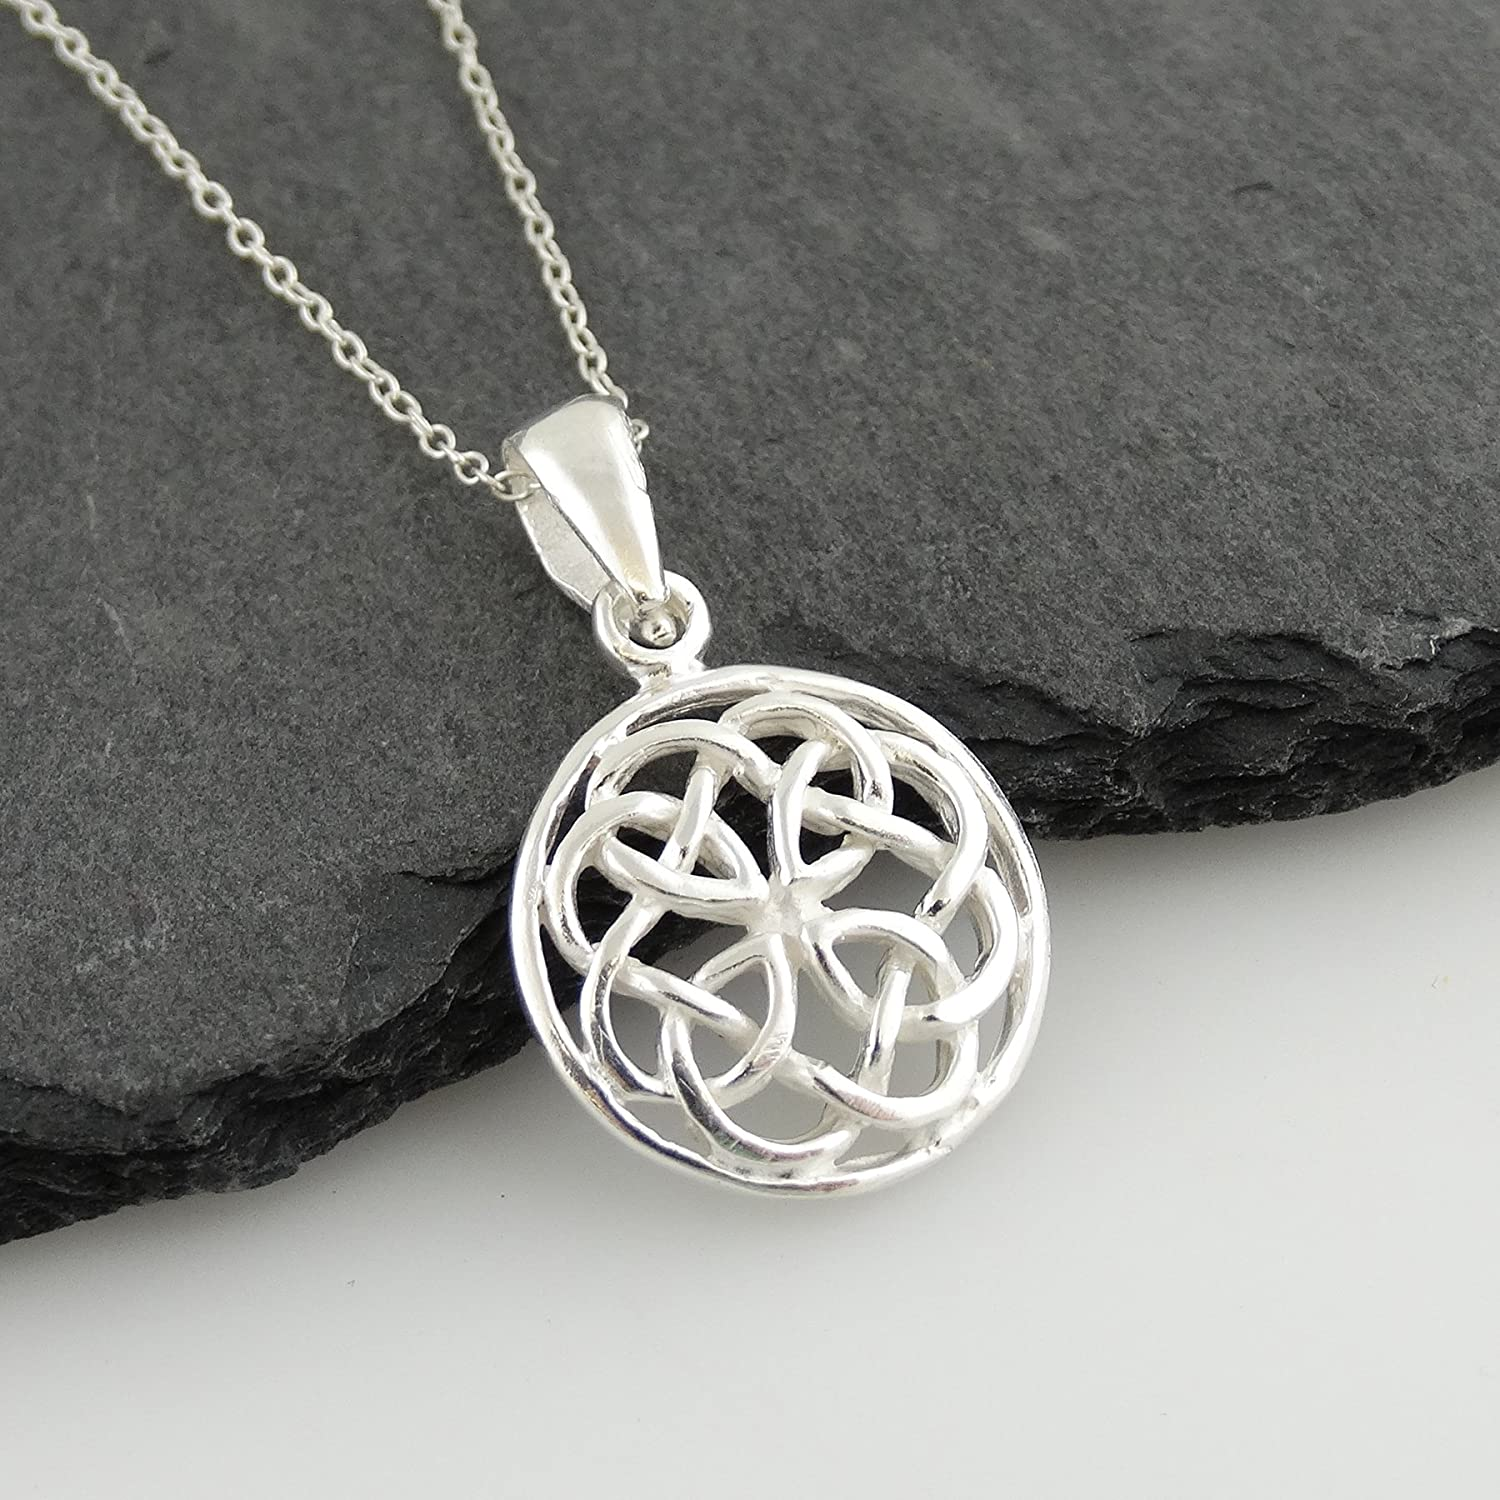 18 Chain FashionJunkie4Life Sterling Silver Round Celtic Knot Pendant Necklace